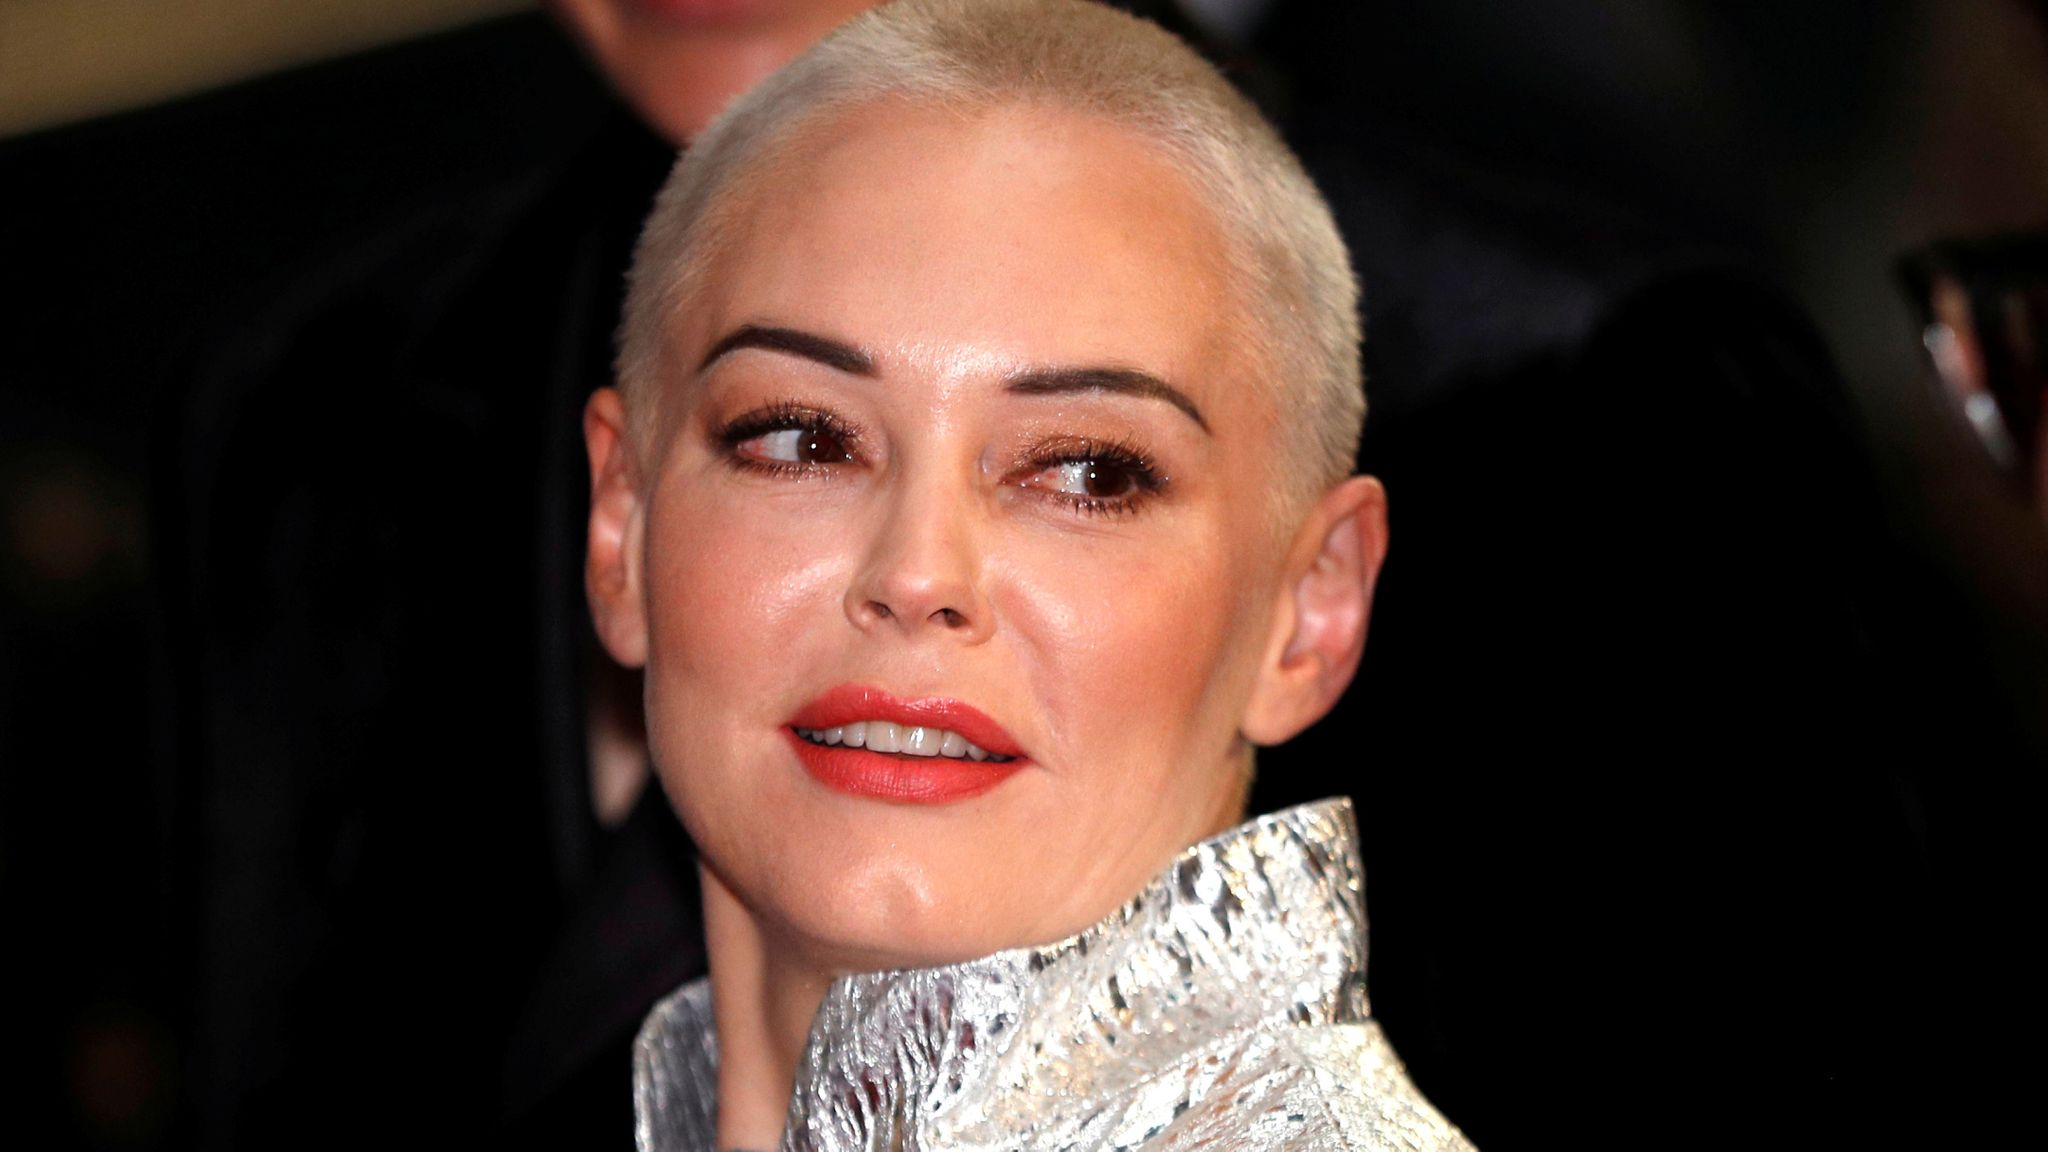 Rose McGowan once dated Marilyn Manson